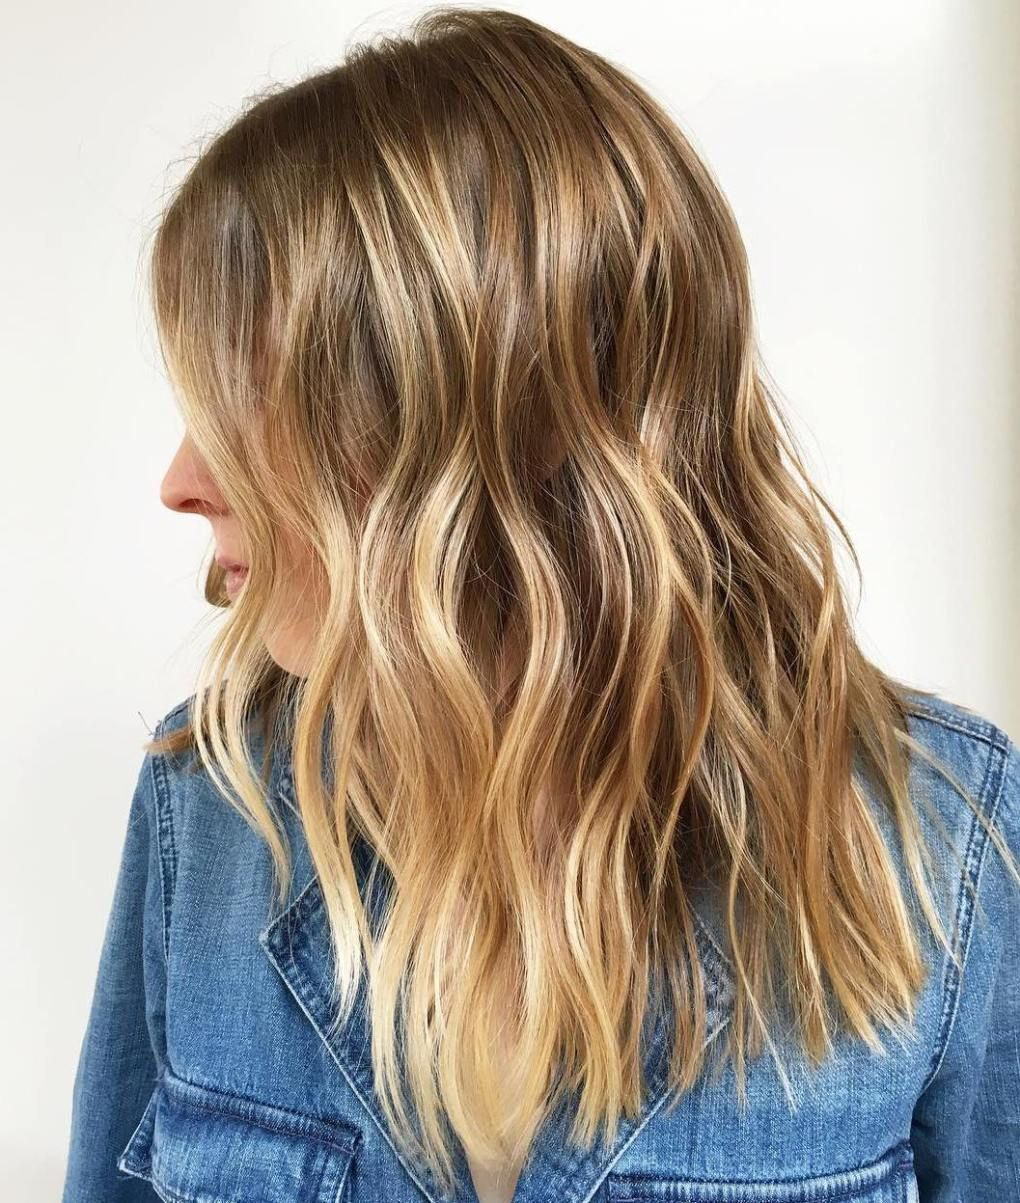 50 Blonde Hair Color Ideas for the Current Season | Blonde ...